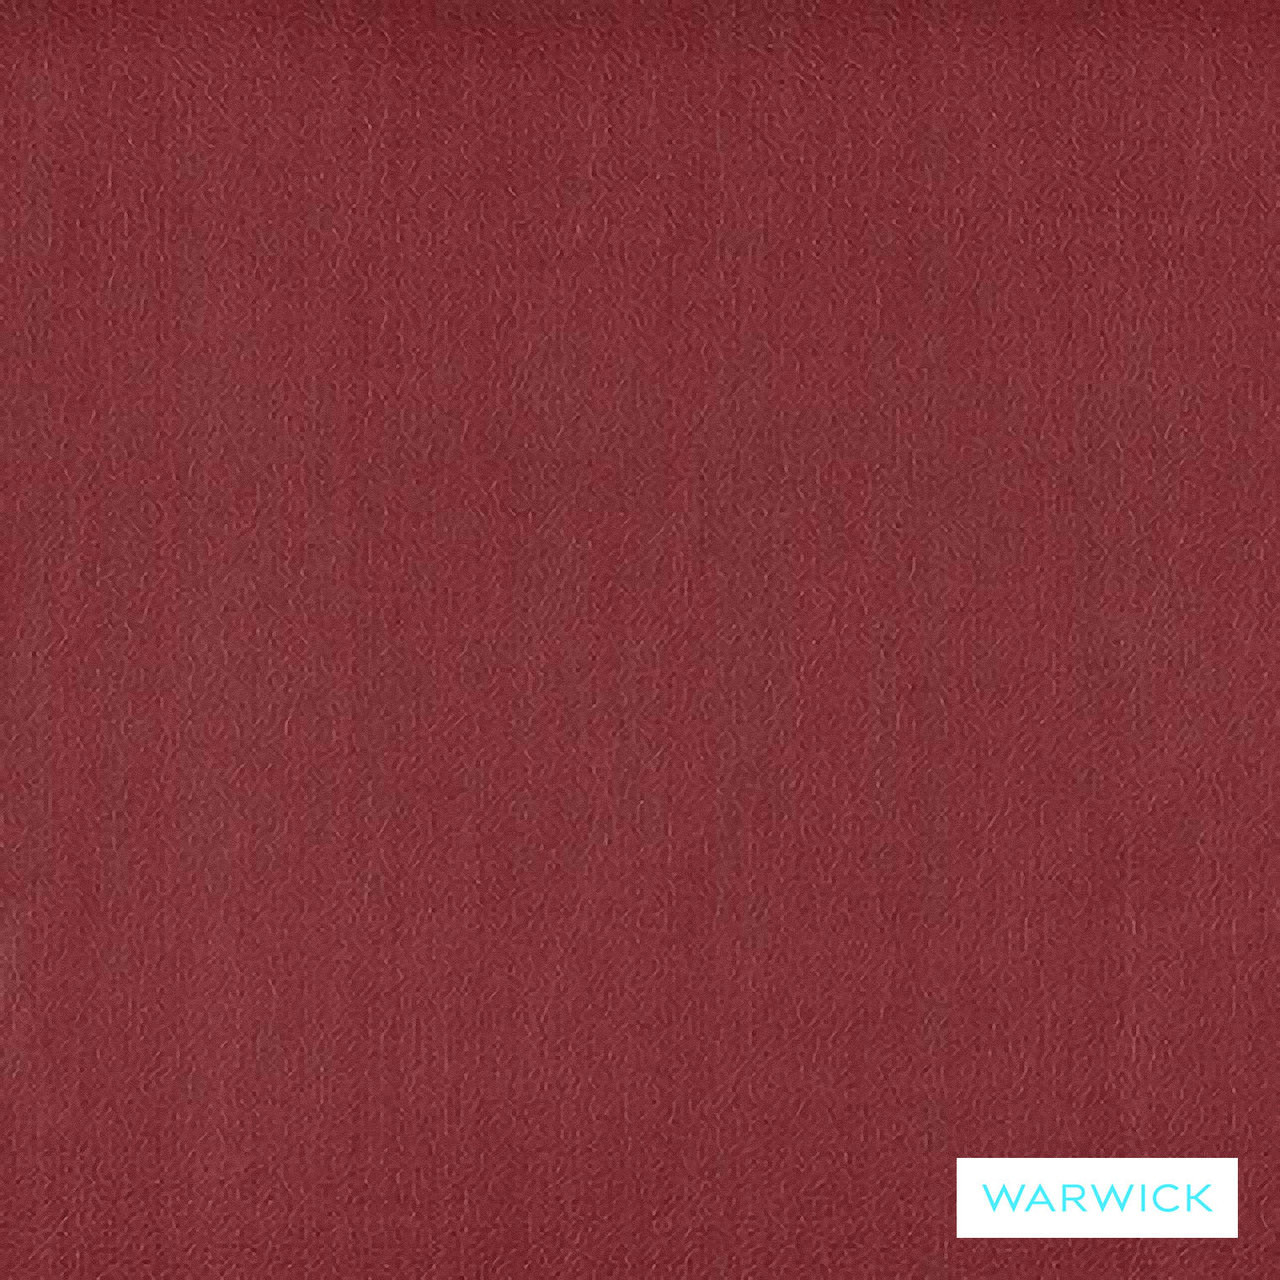 Warwick Lustrell Charisma Cabernet  | Upholstery Fabric - Burgundy, Plain, Red, Vinyl, HealthGuard, Synthetic, Washable, Commercial Use